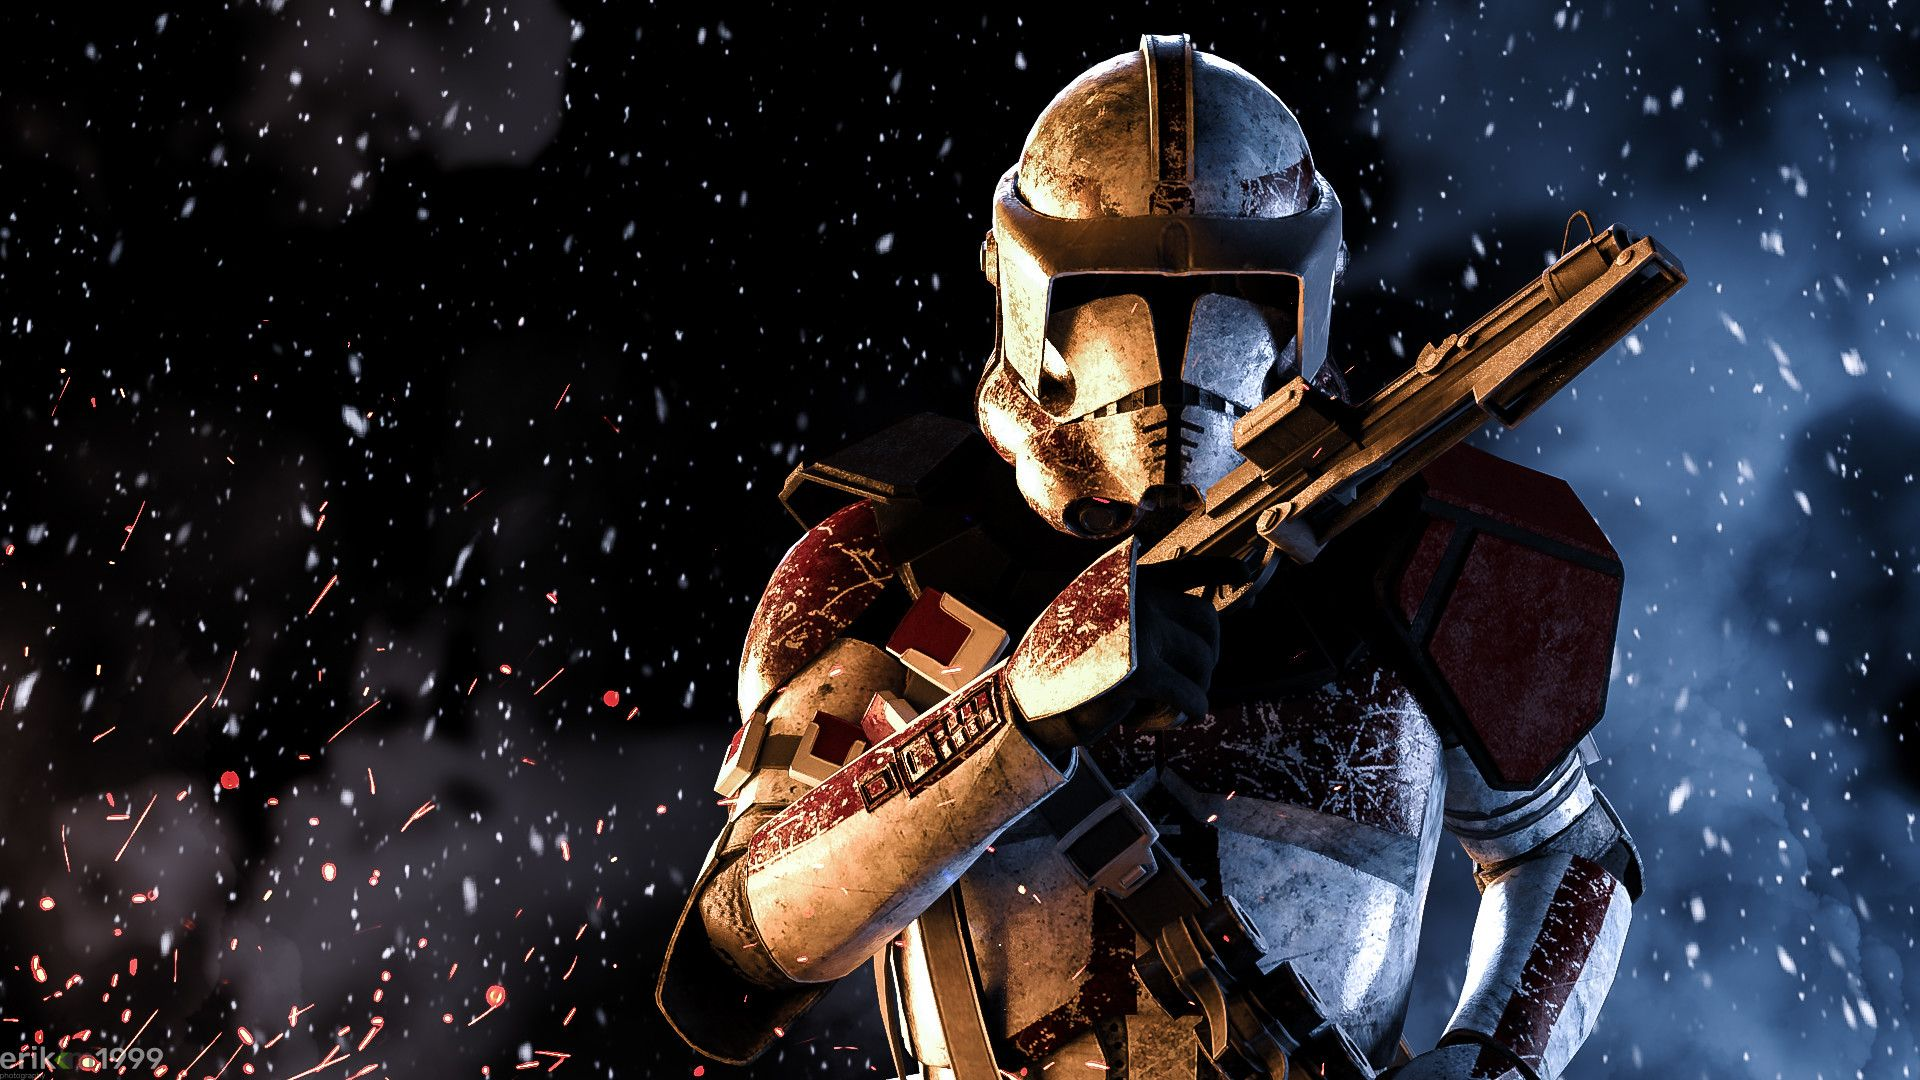 1920 X 1080 Star Wars Wallpapers Top Free 1920 X 1080 Star Wars Backgrounds Wallpaperaccess